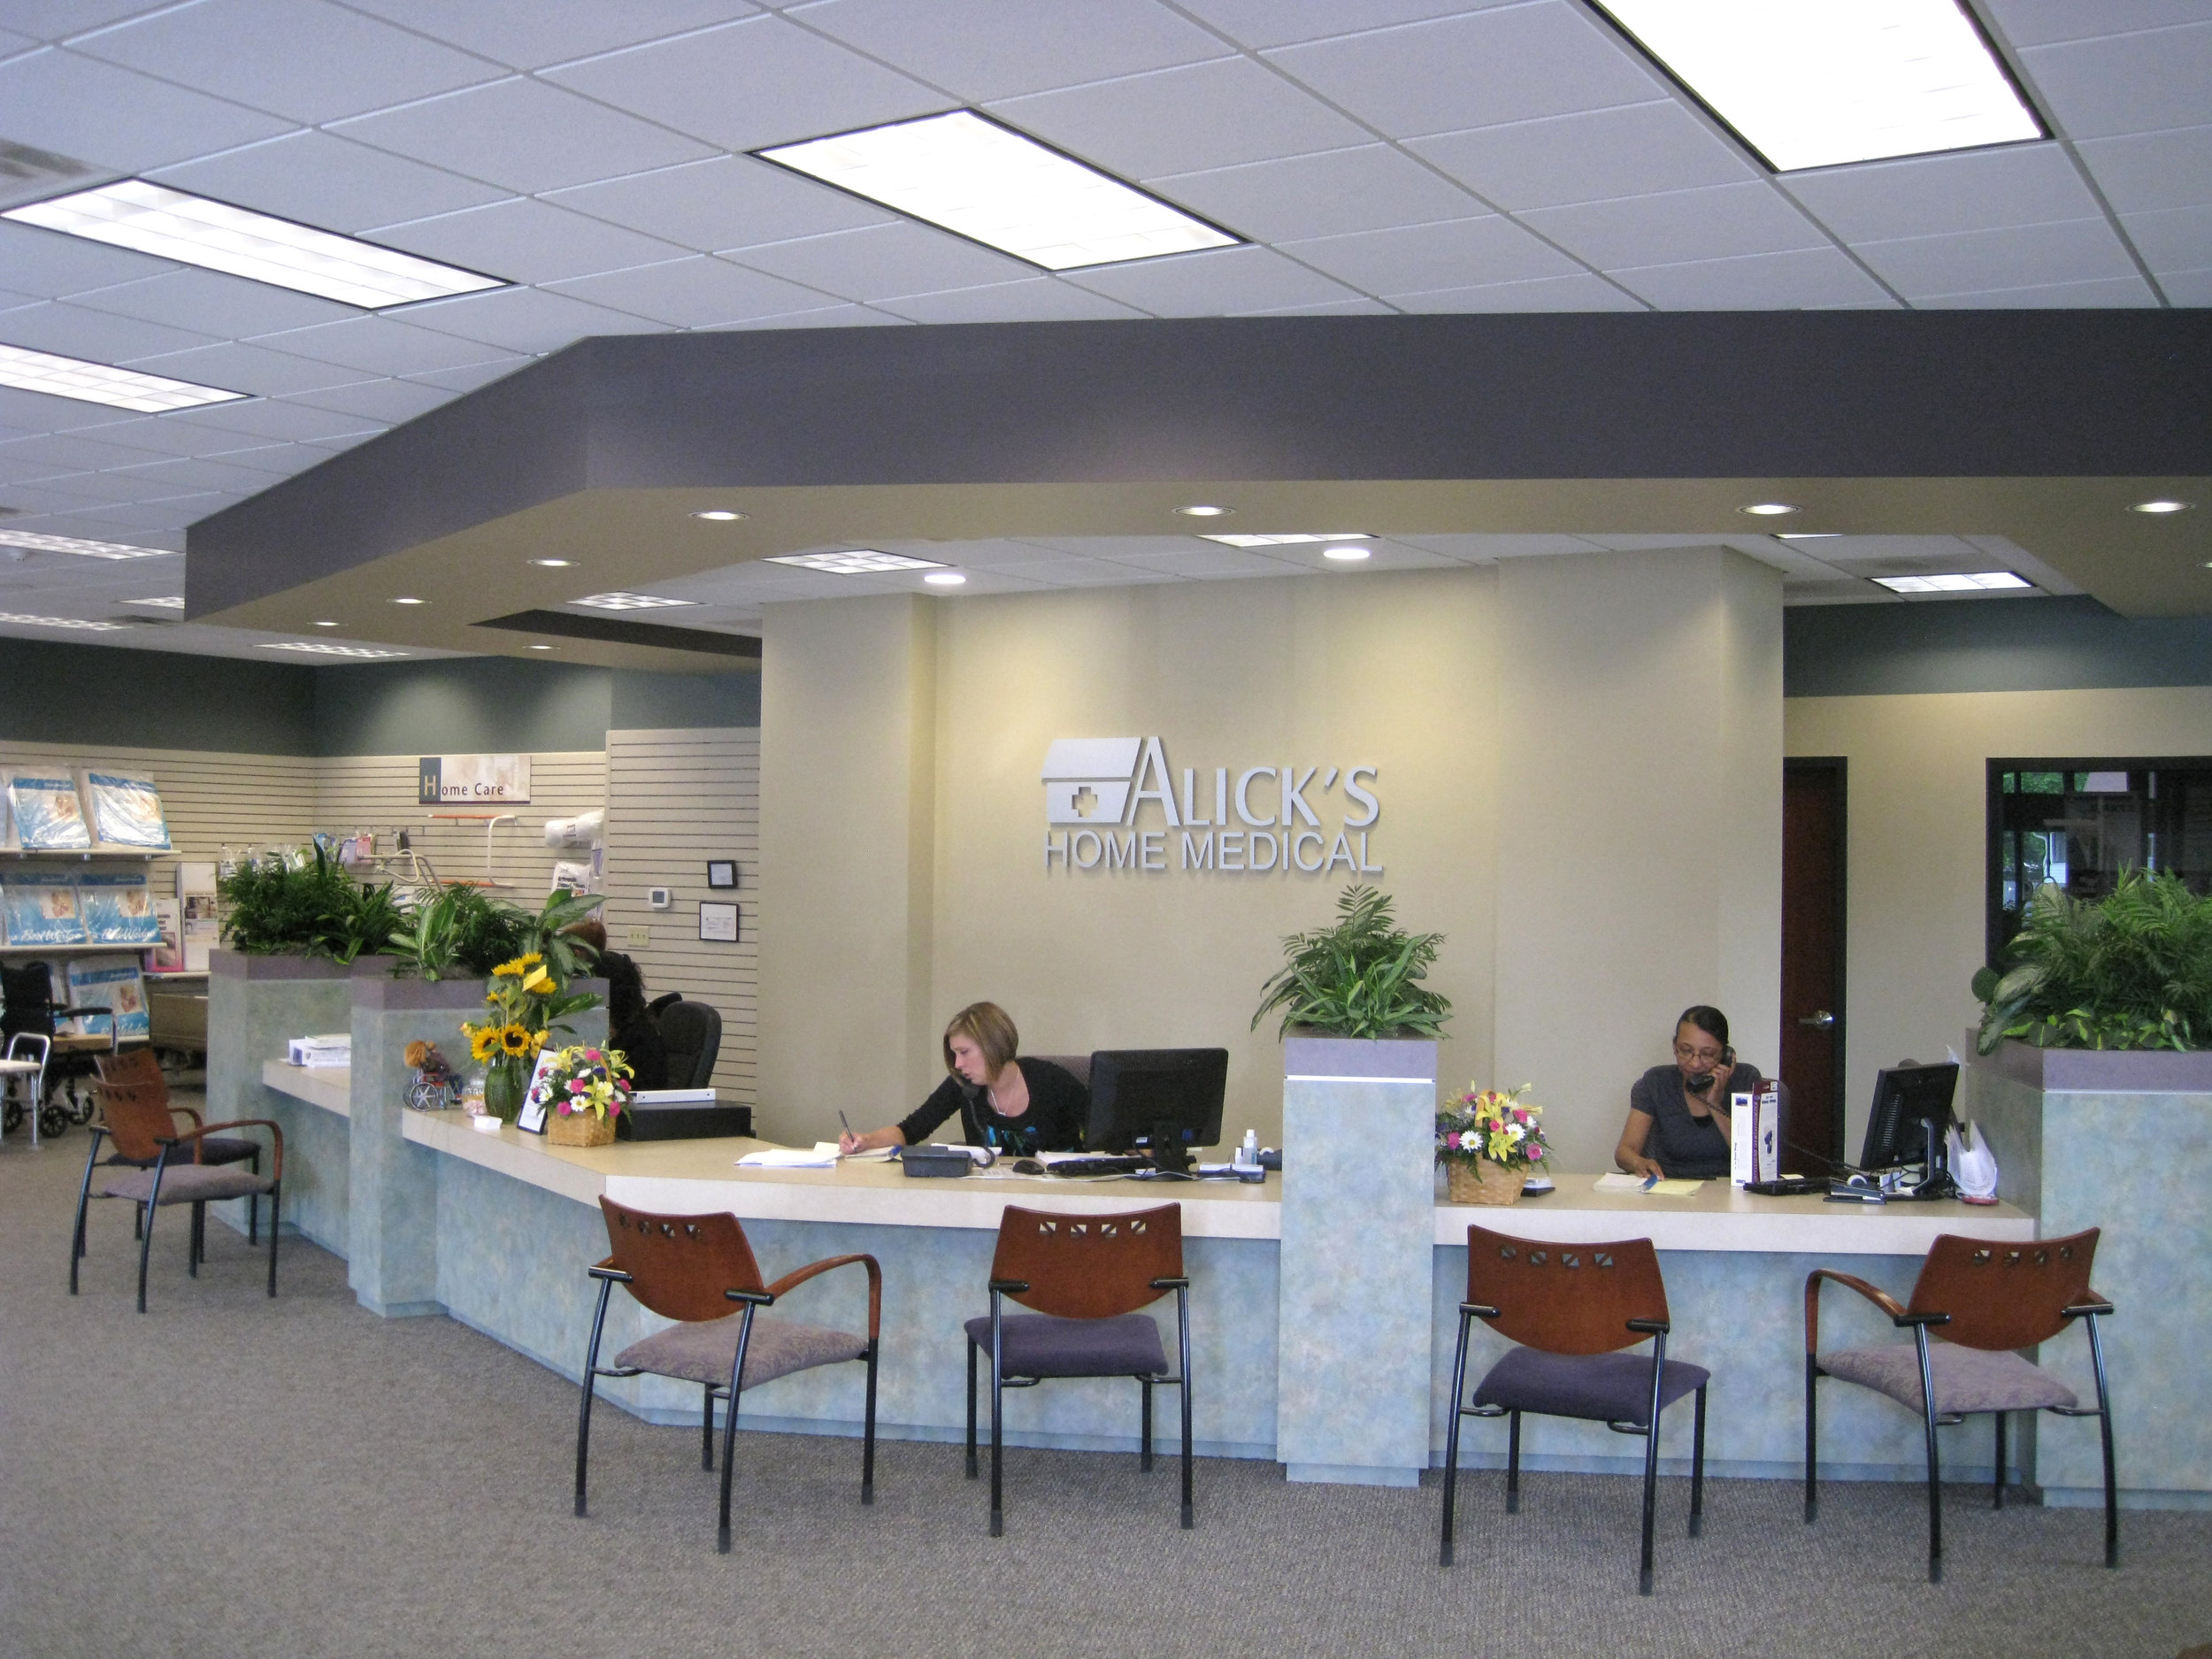 Alicks Home Medical 2.jpg